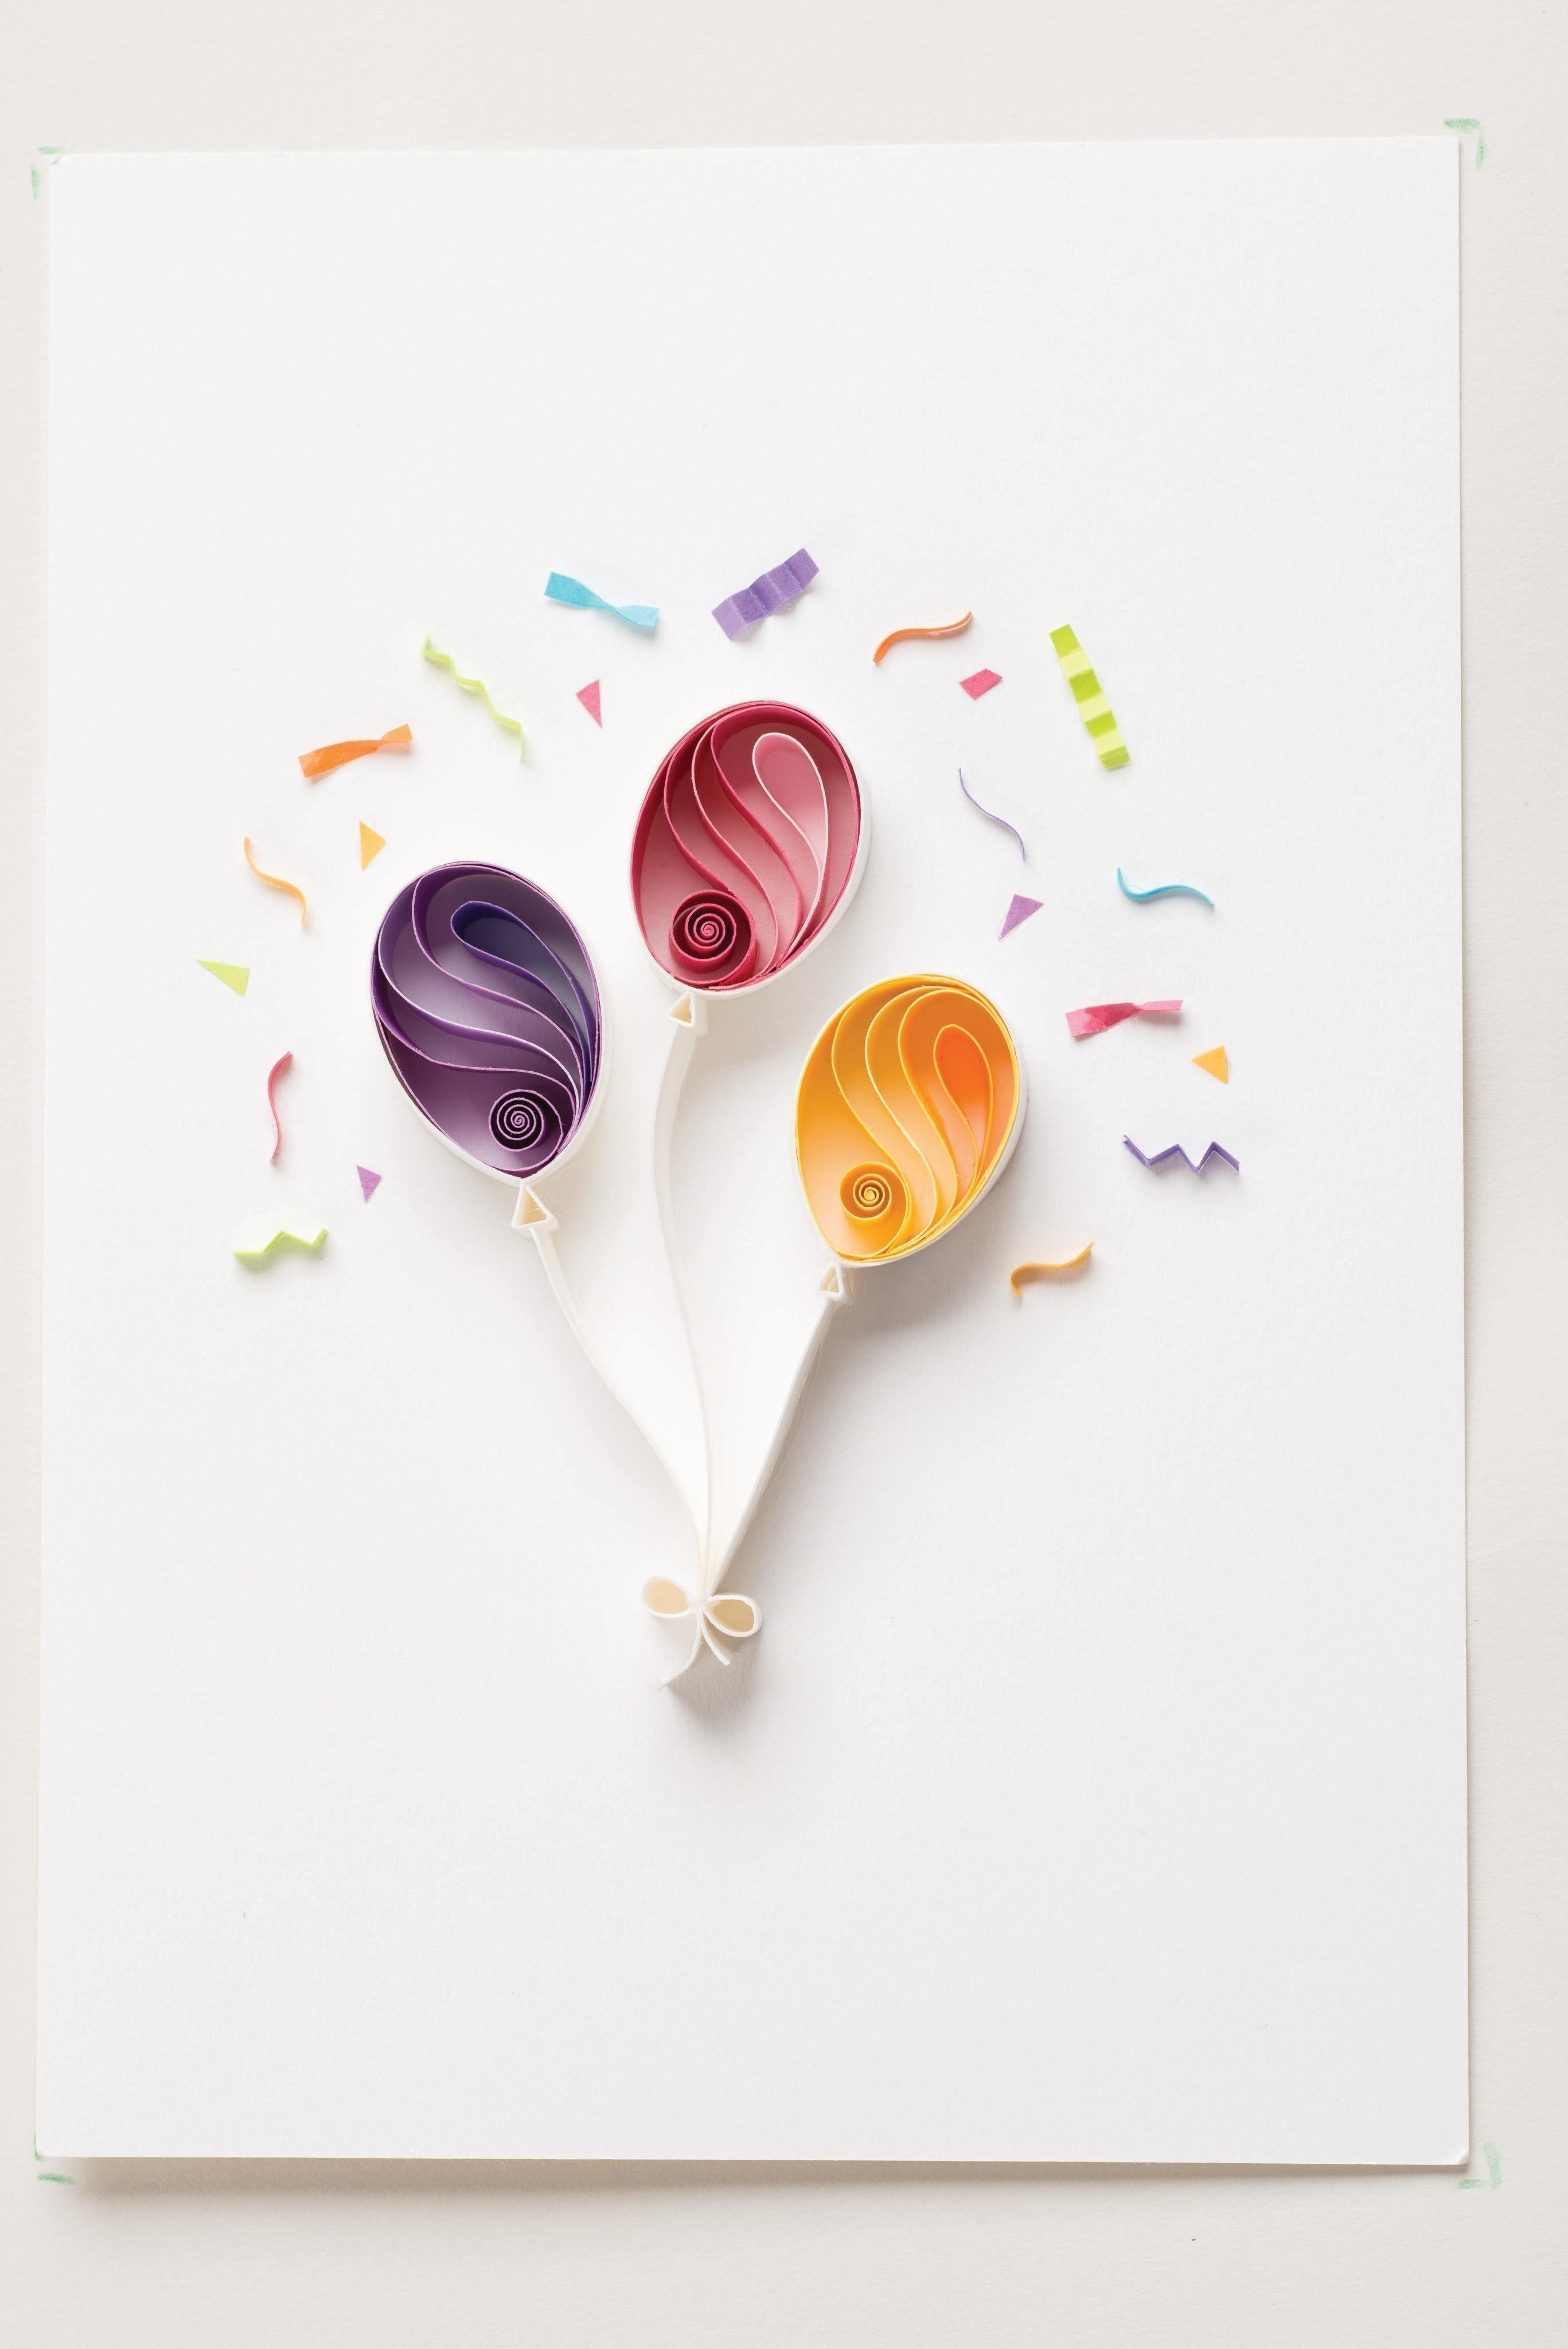 Birthday Balloons 183 Extract From Quilling Art By Sena Runa